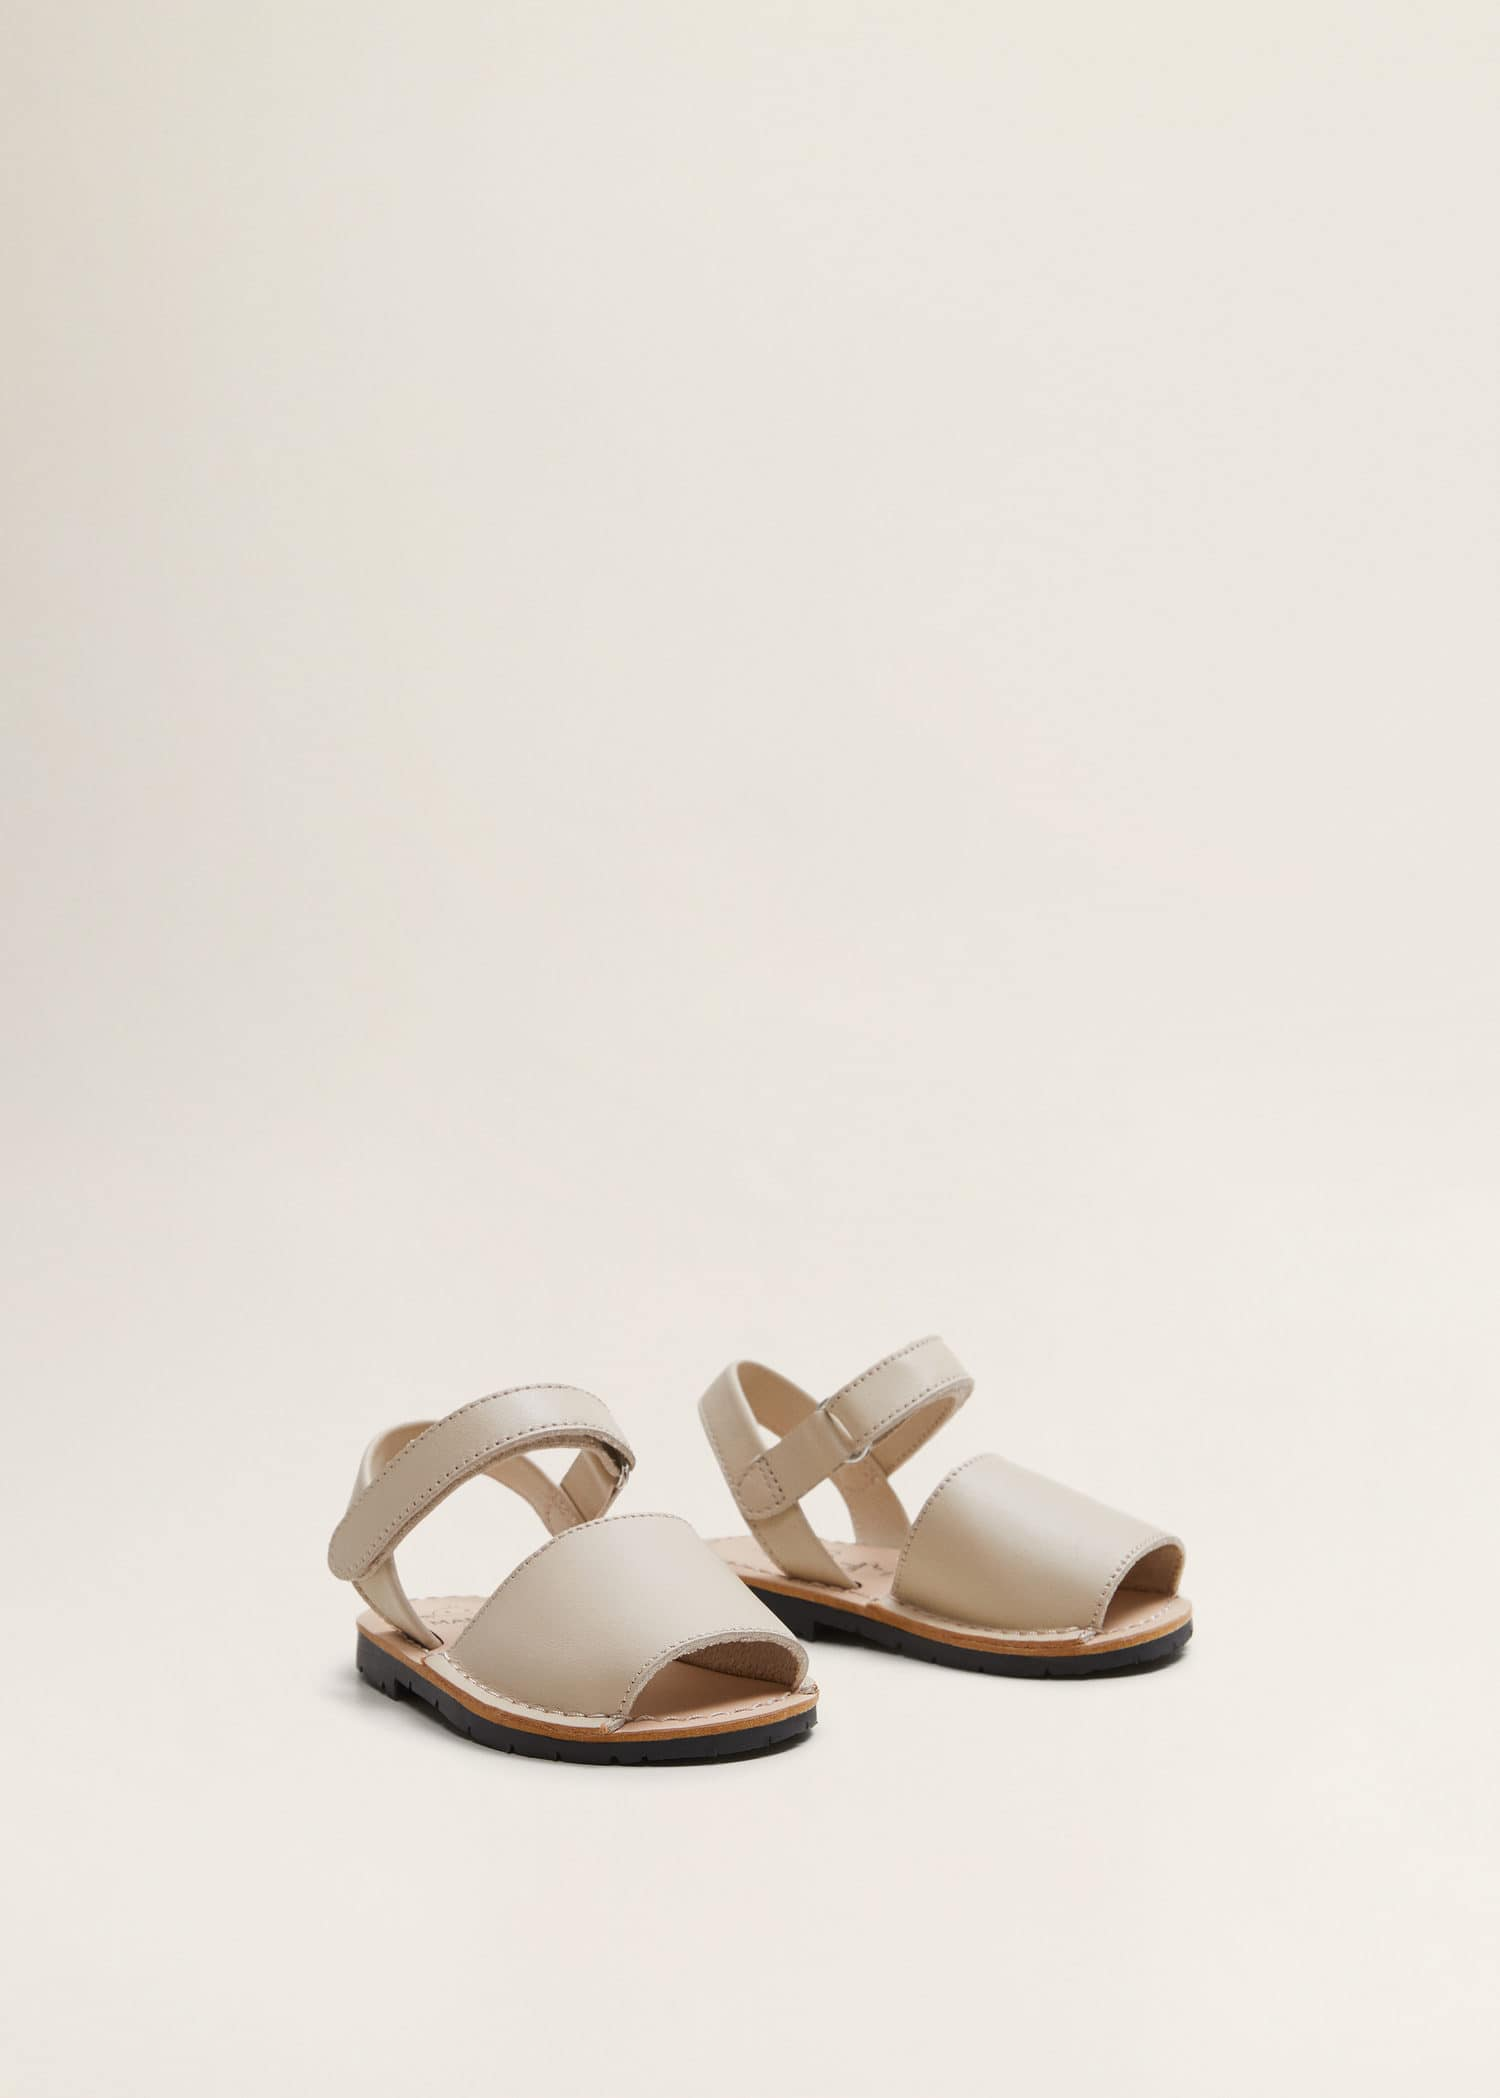 c2644a07e9b82 Leather sandals - Girls